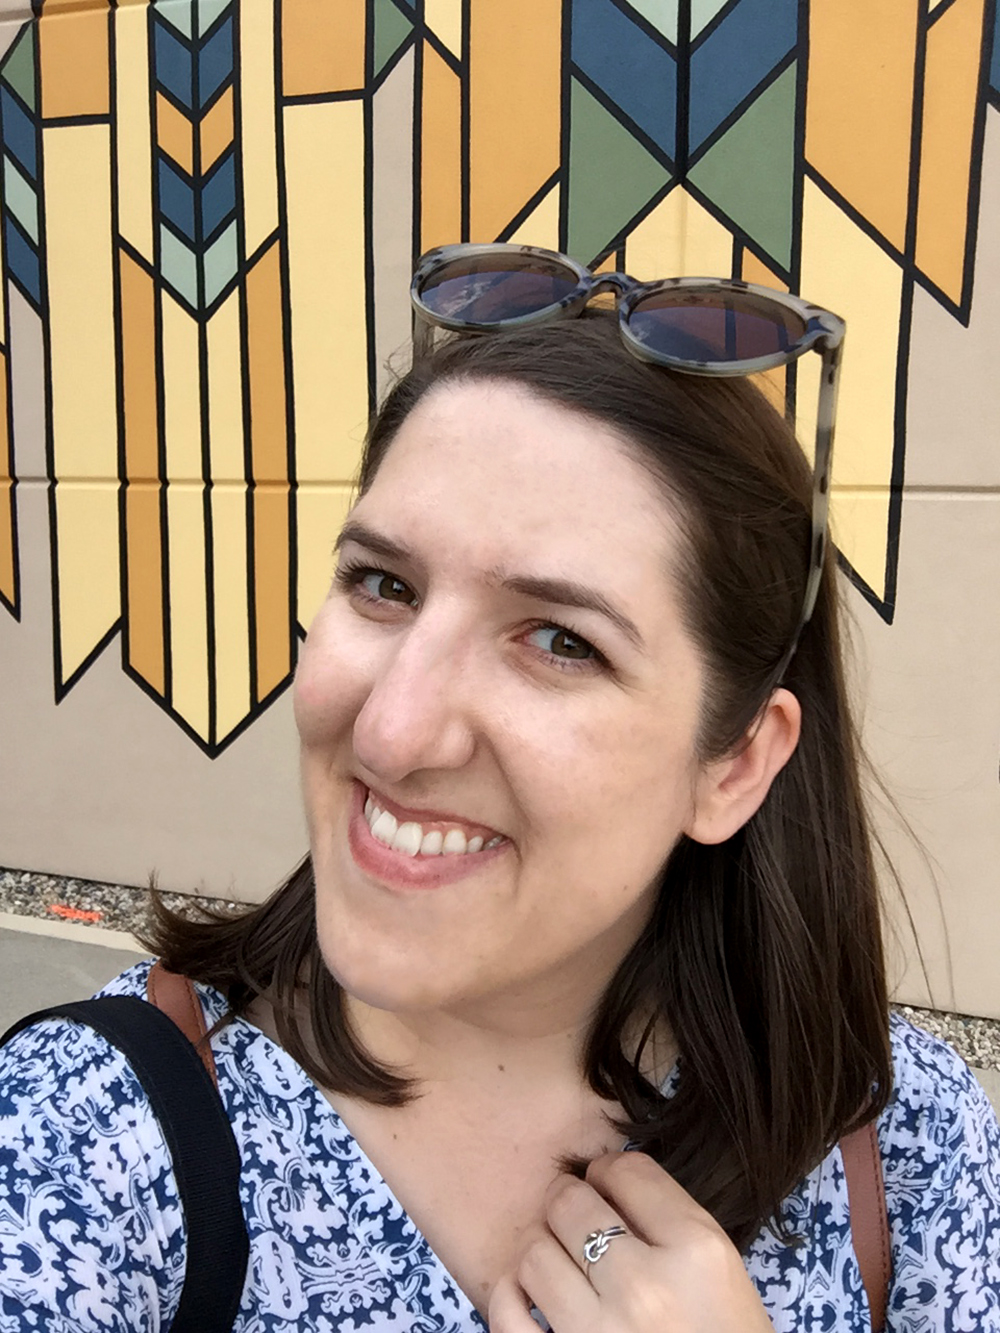 Selfie of brunette woman in front of Frank Lloyd Wright-inspired public art in Mason City, Iowa